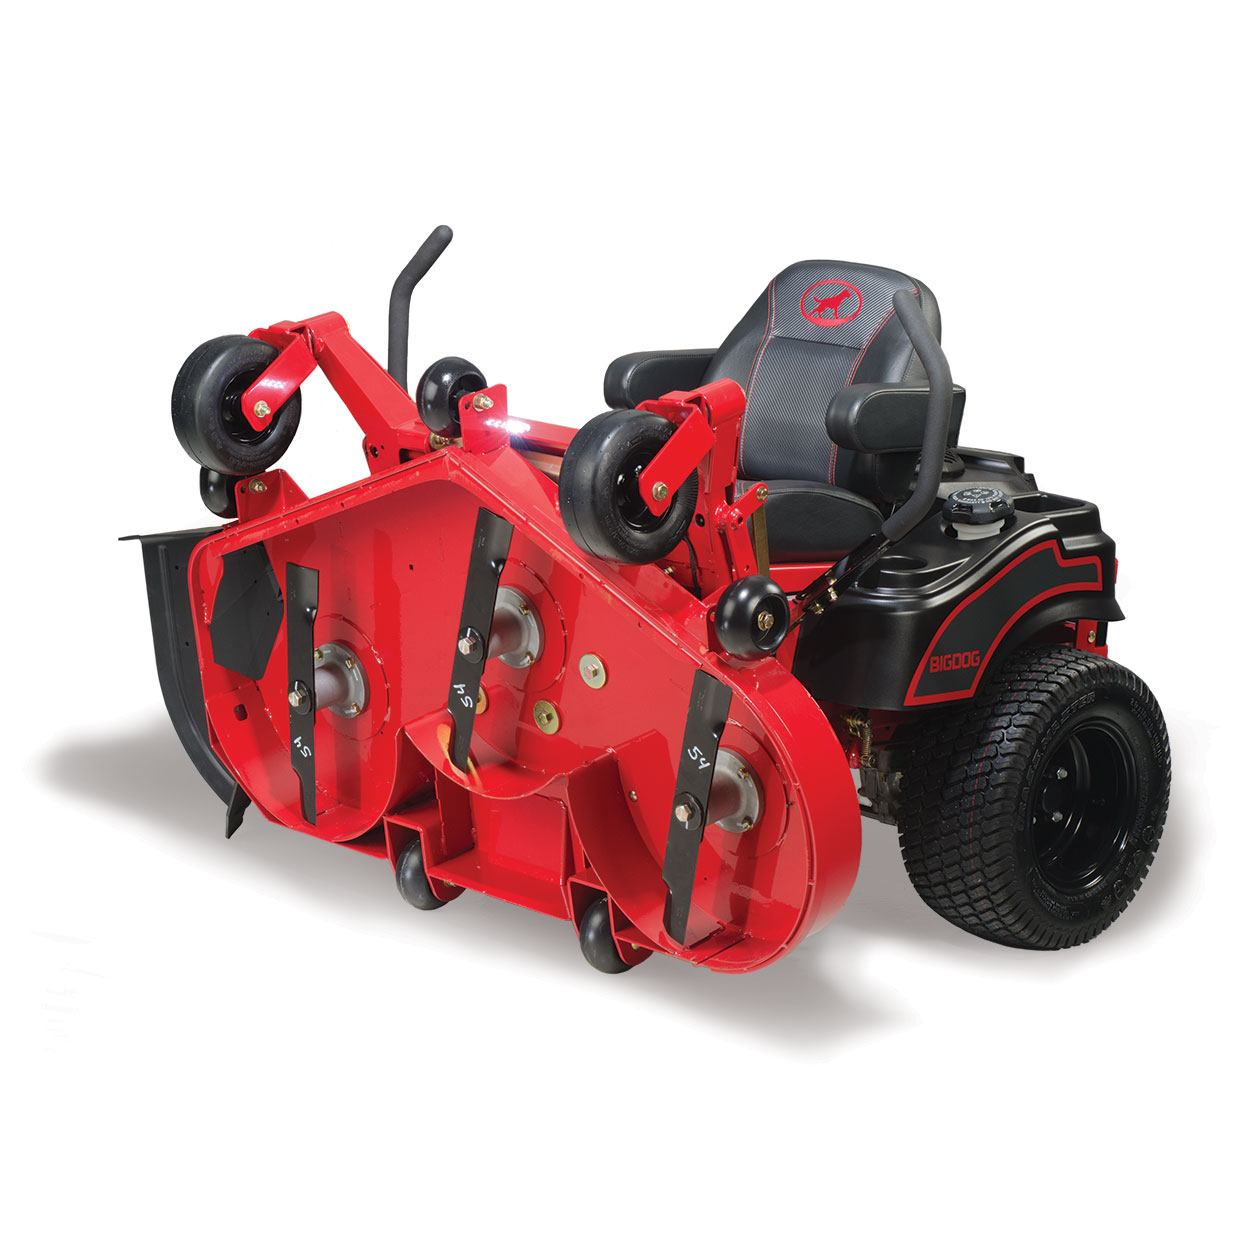 2016 Big Dog Mowers BlackJack 54 in. in Leesville, Louisiana